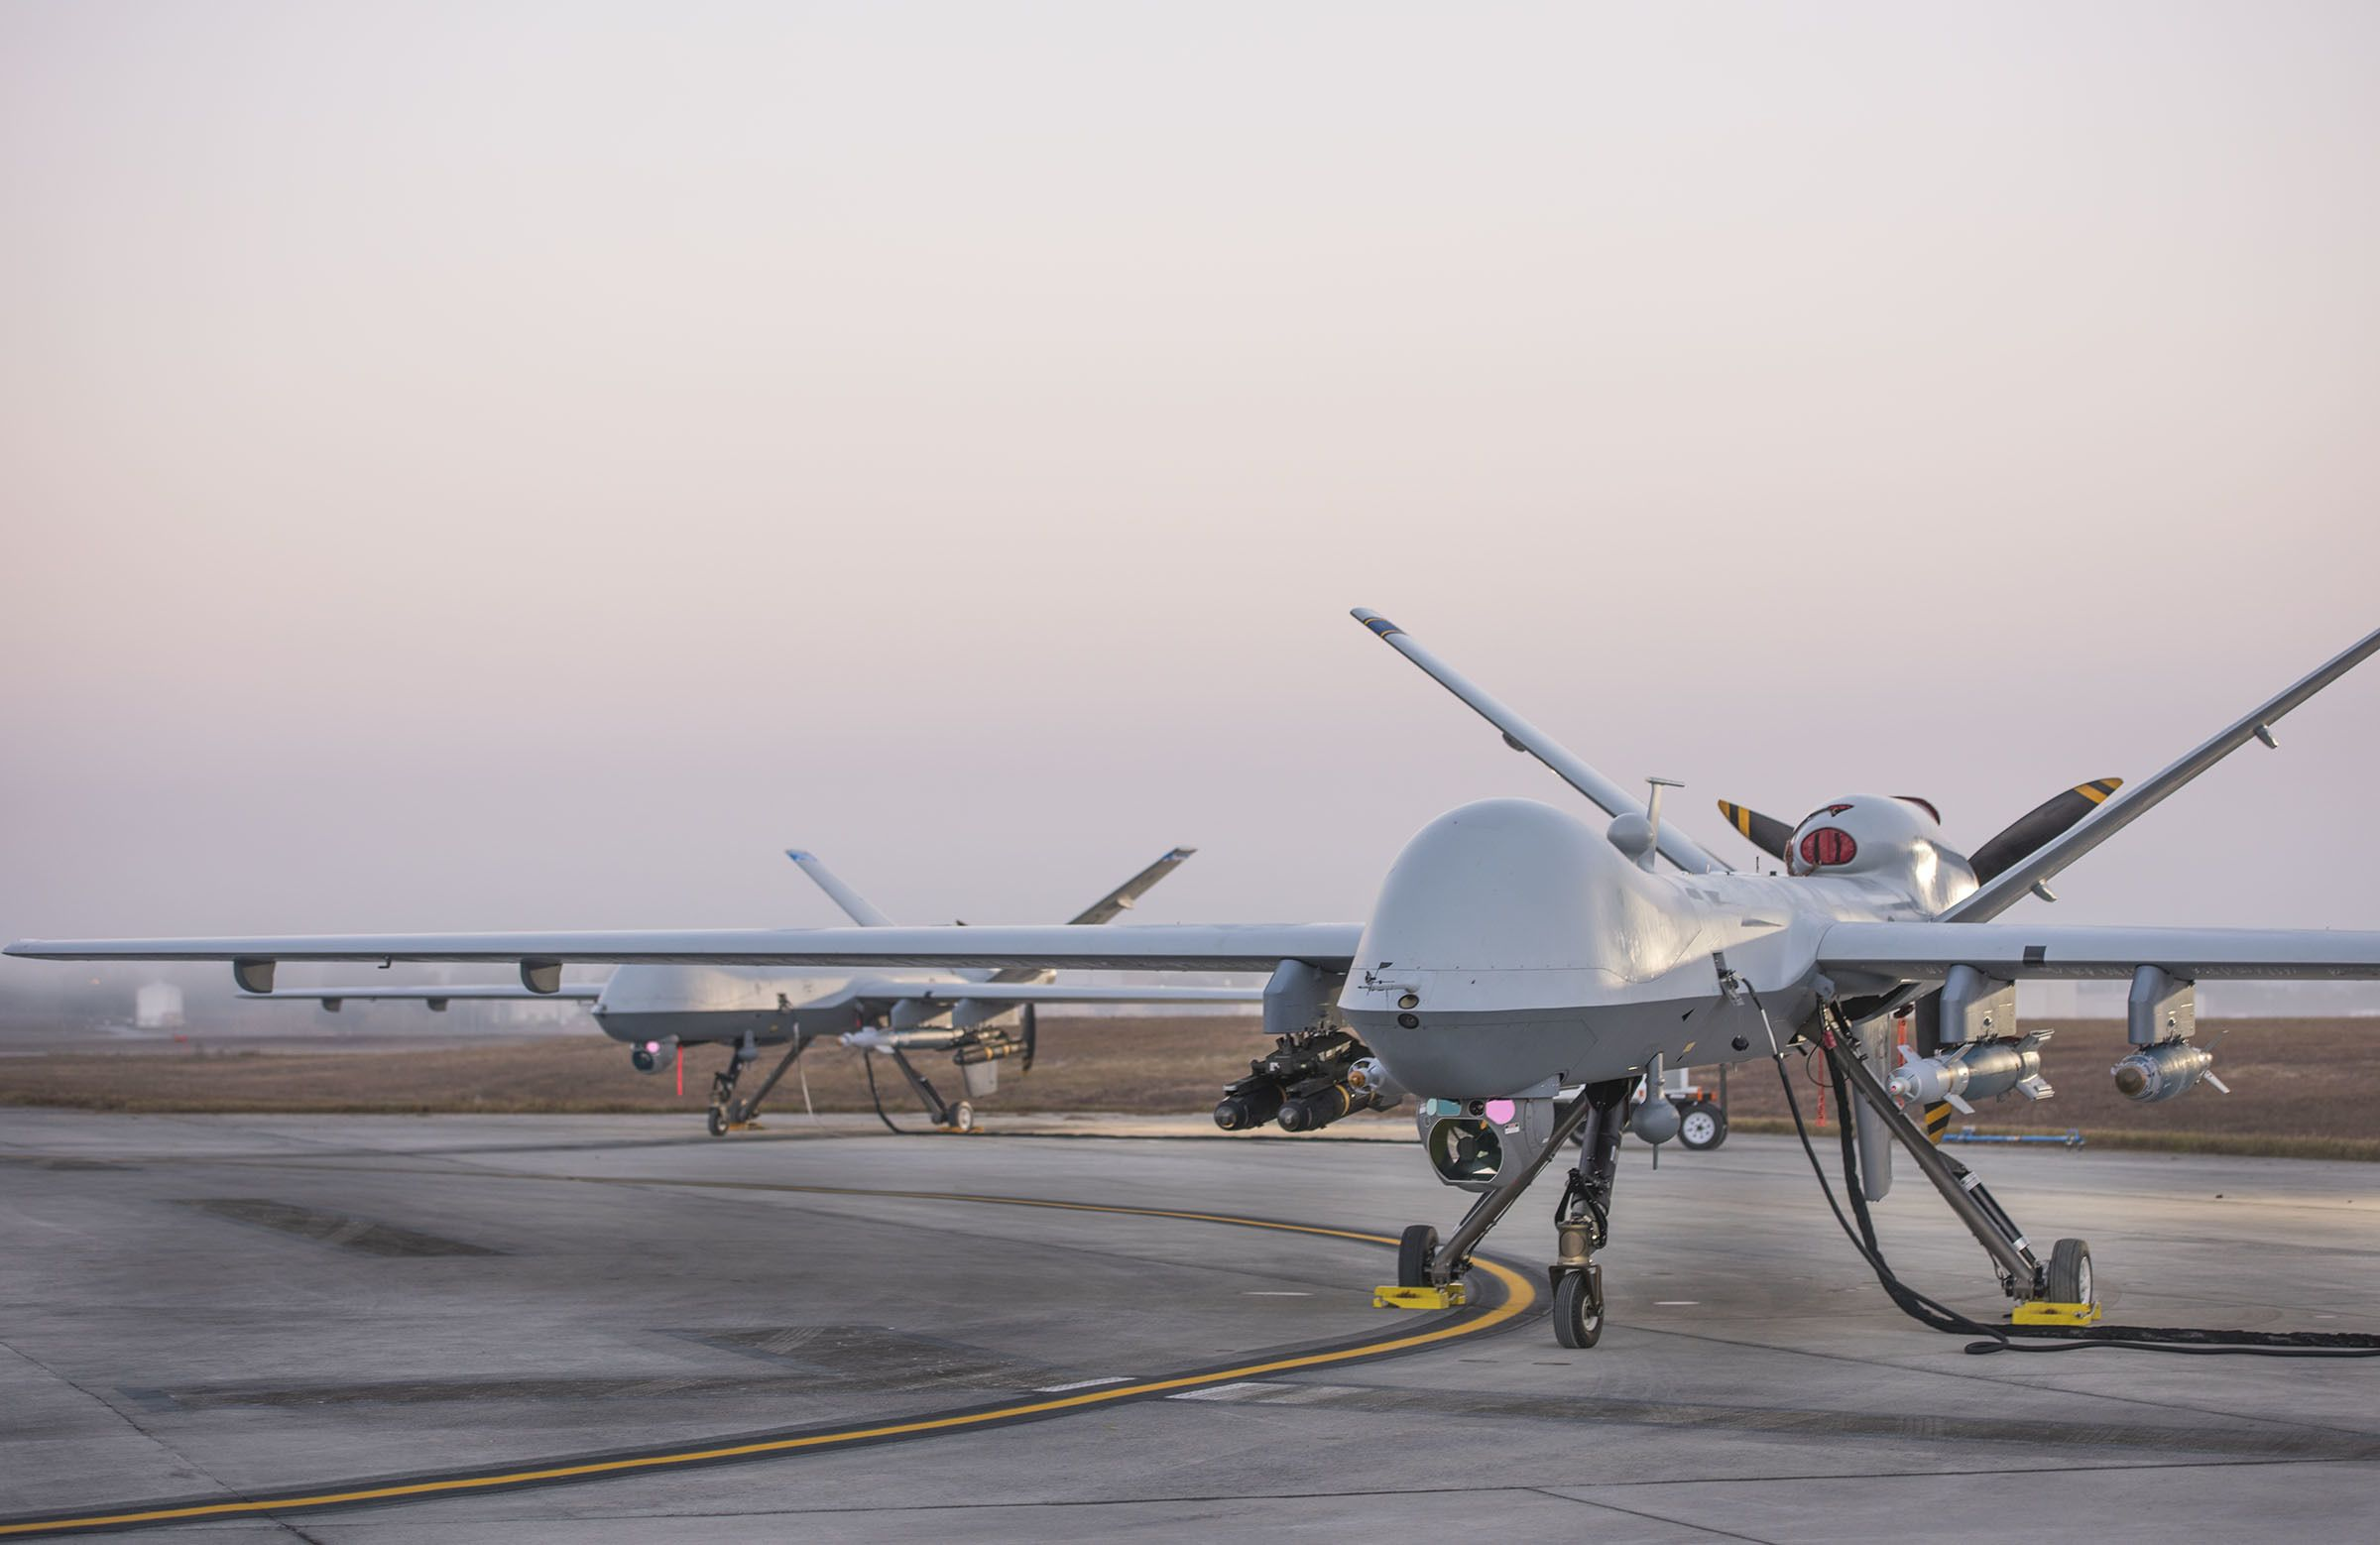 popularmechanics.com - Kyle Mizokami - A Reaper Drone Shot Down Another Drone in First Unmanned Air-to-Air Kill